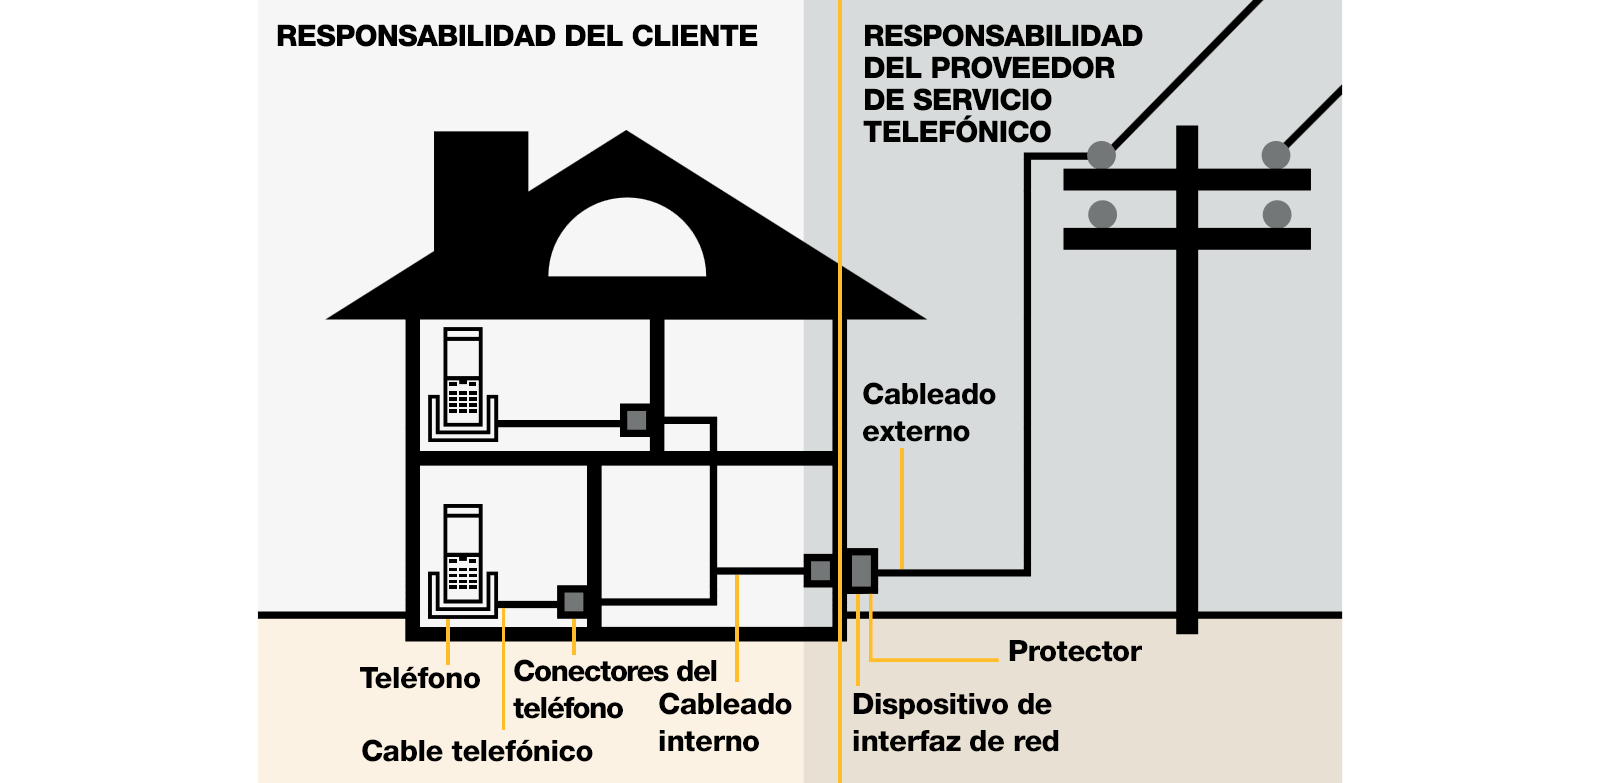 Image showing customer's area of responsibility vs the telephone providers area of responsbility. Generally spreak, the customer is responsible for wiring inside the home. The phone company is responsible for wiring up to the Network Interface Device outside the home.